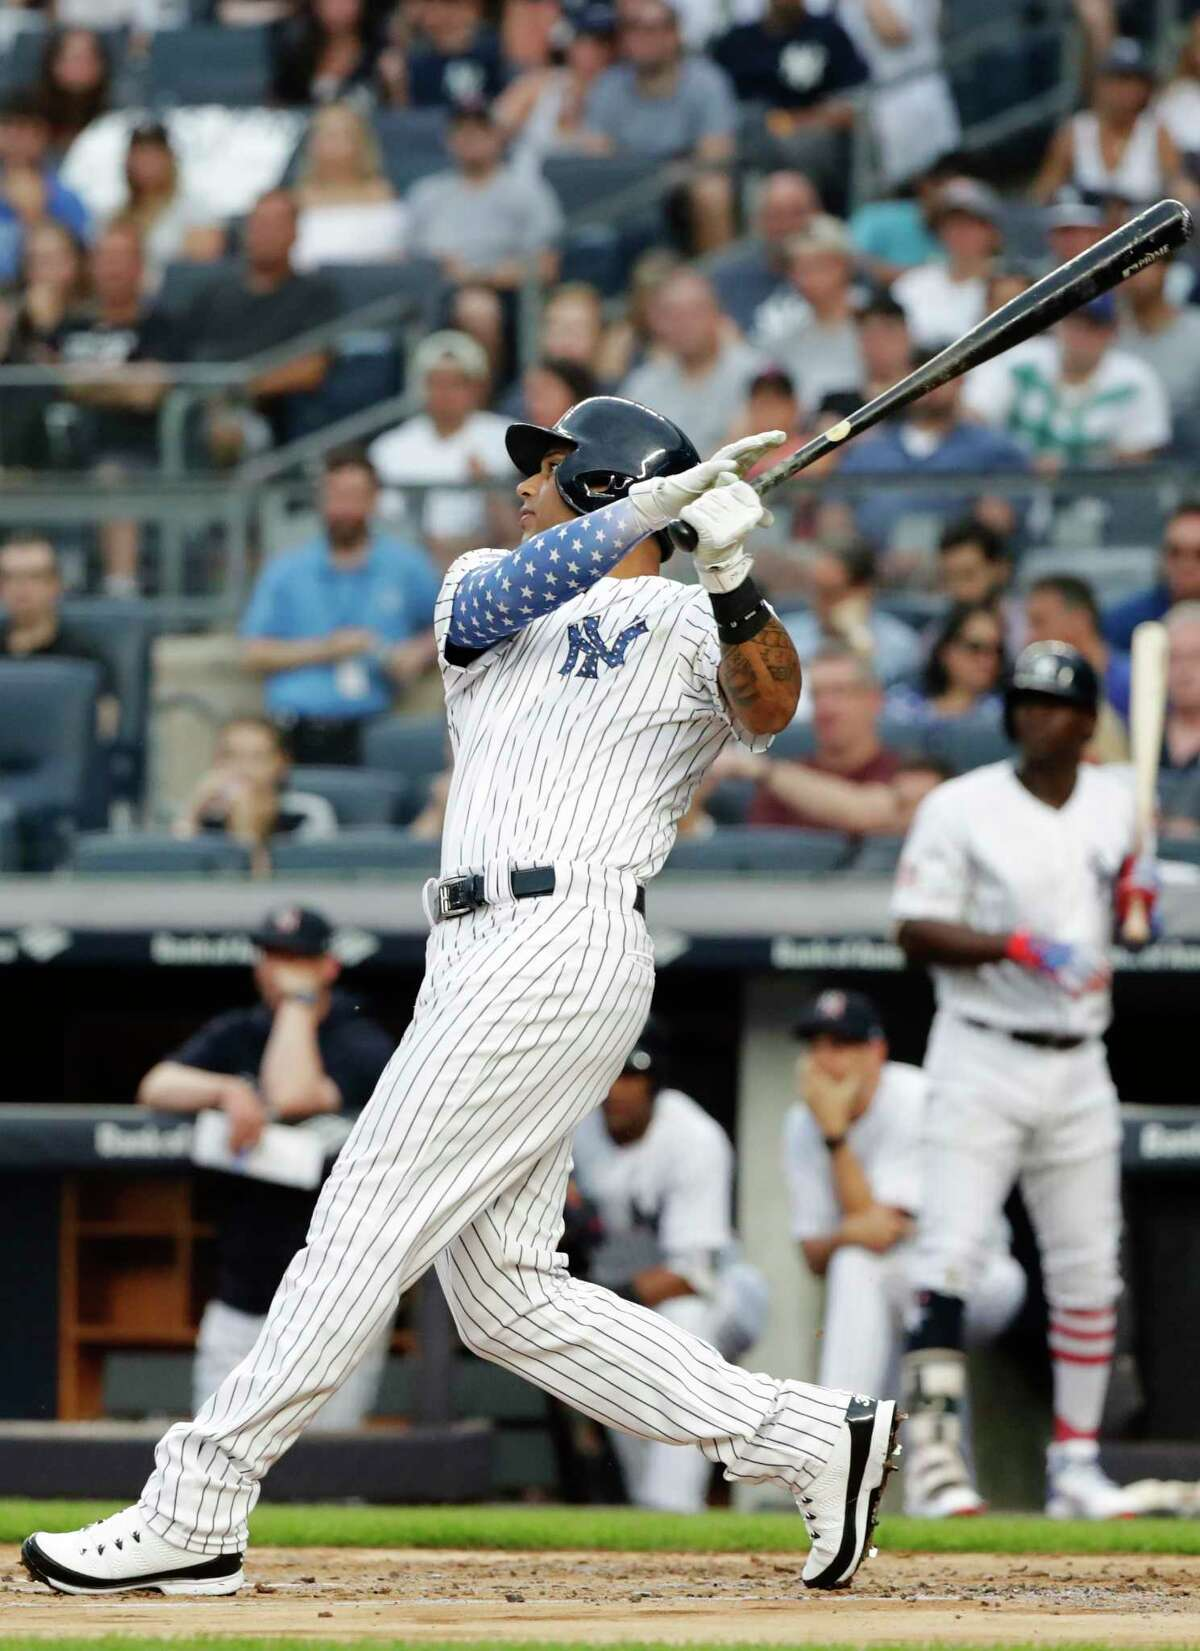 New York Yankees' Aaron Hicks watches his two-run home run during the first inning of a baseball game against the Atlanta Braves on Tuesday, July 3, 2018, in New York. (AP Photo/Frank Franklin II)